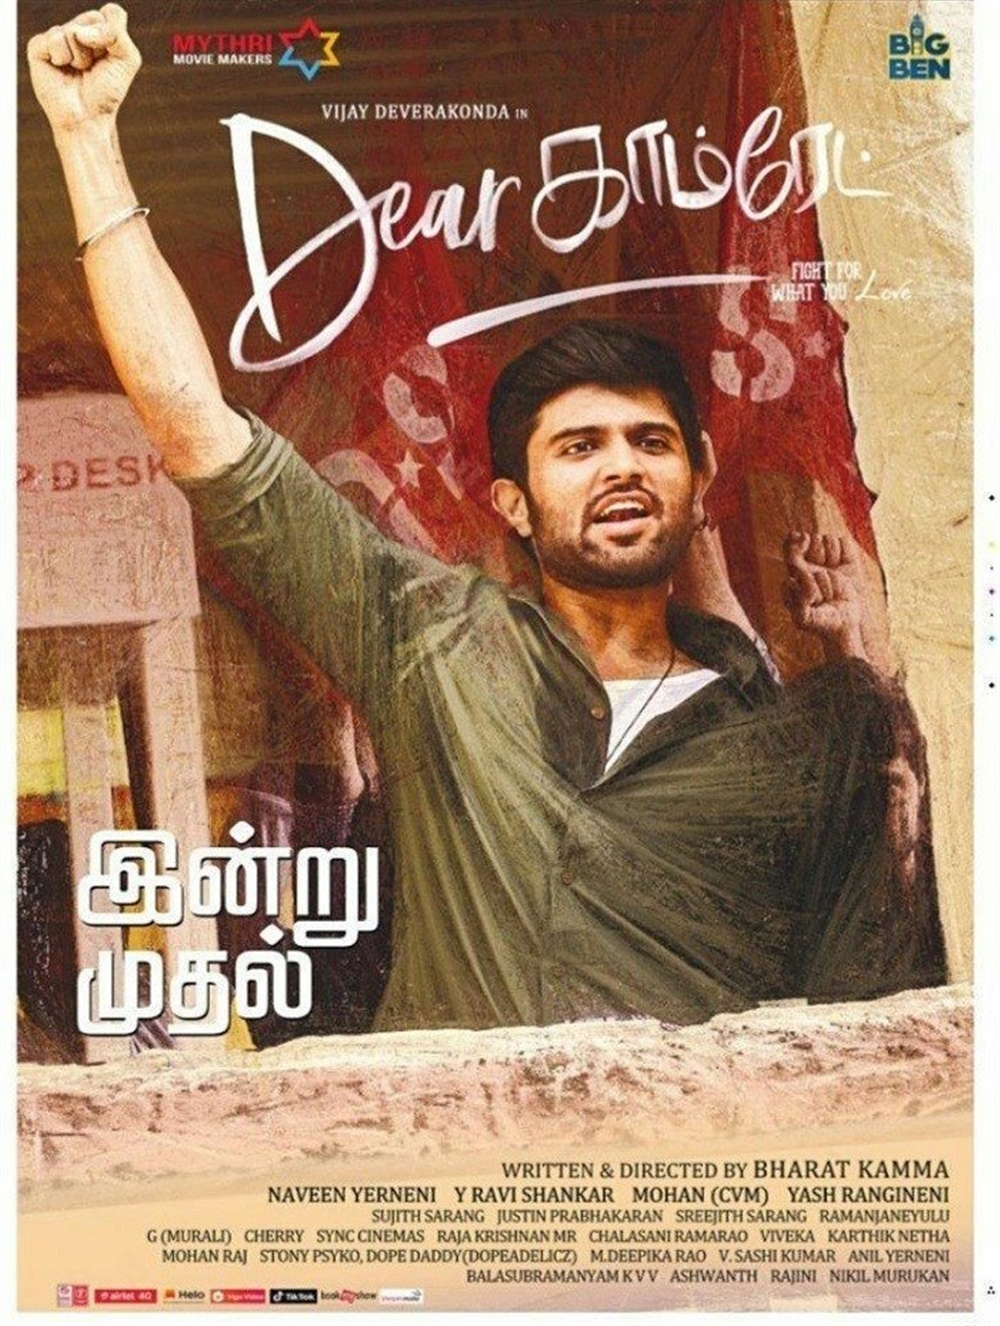 Vijay Devarakonda Dear Comrade Tamil Movie Release Today Posters